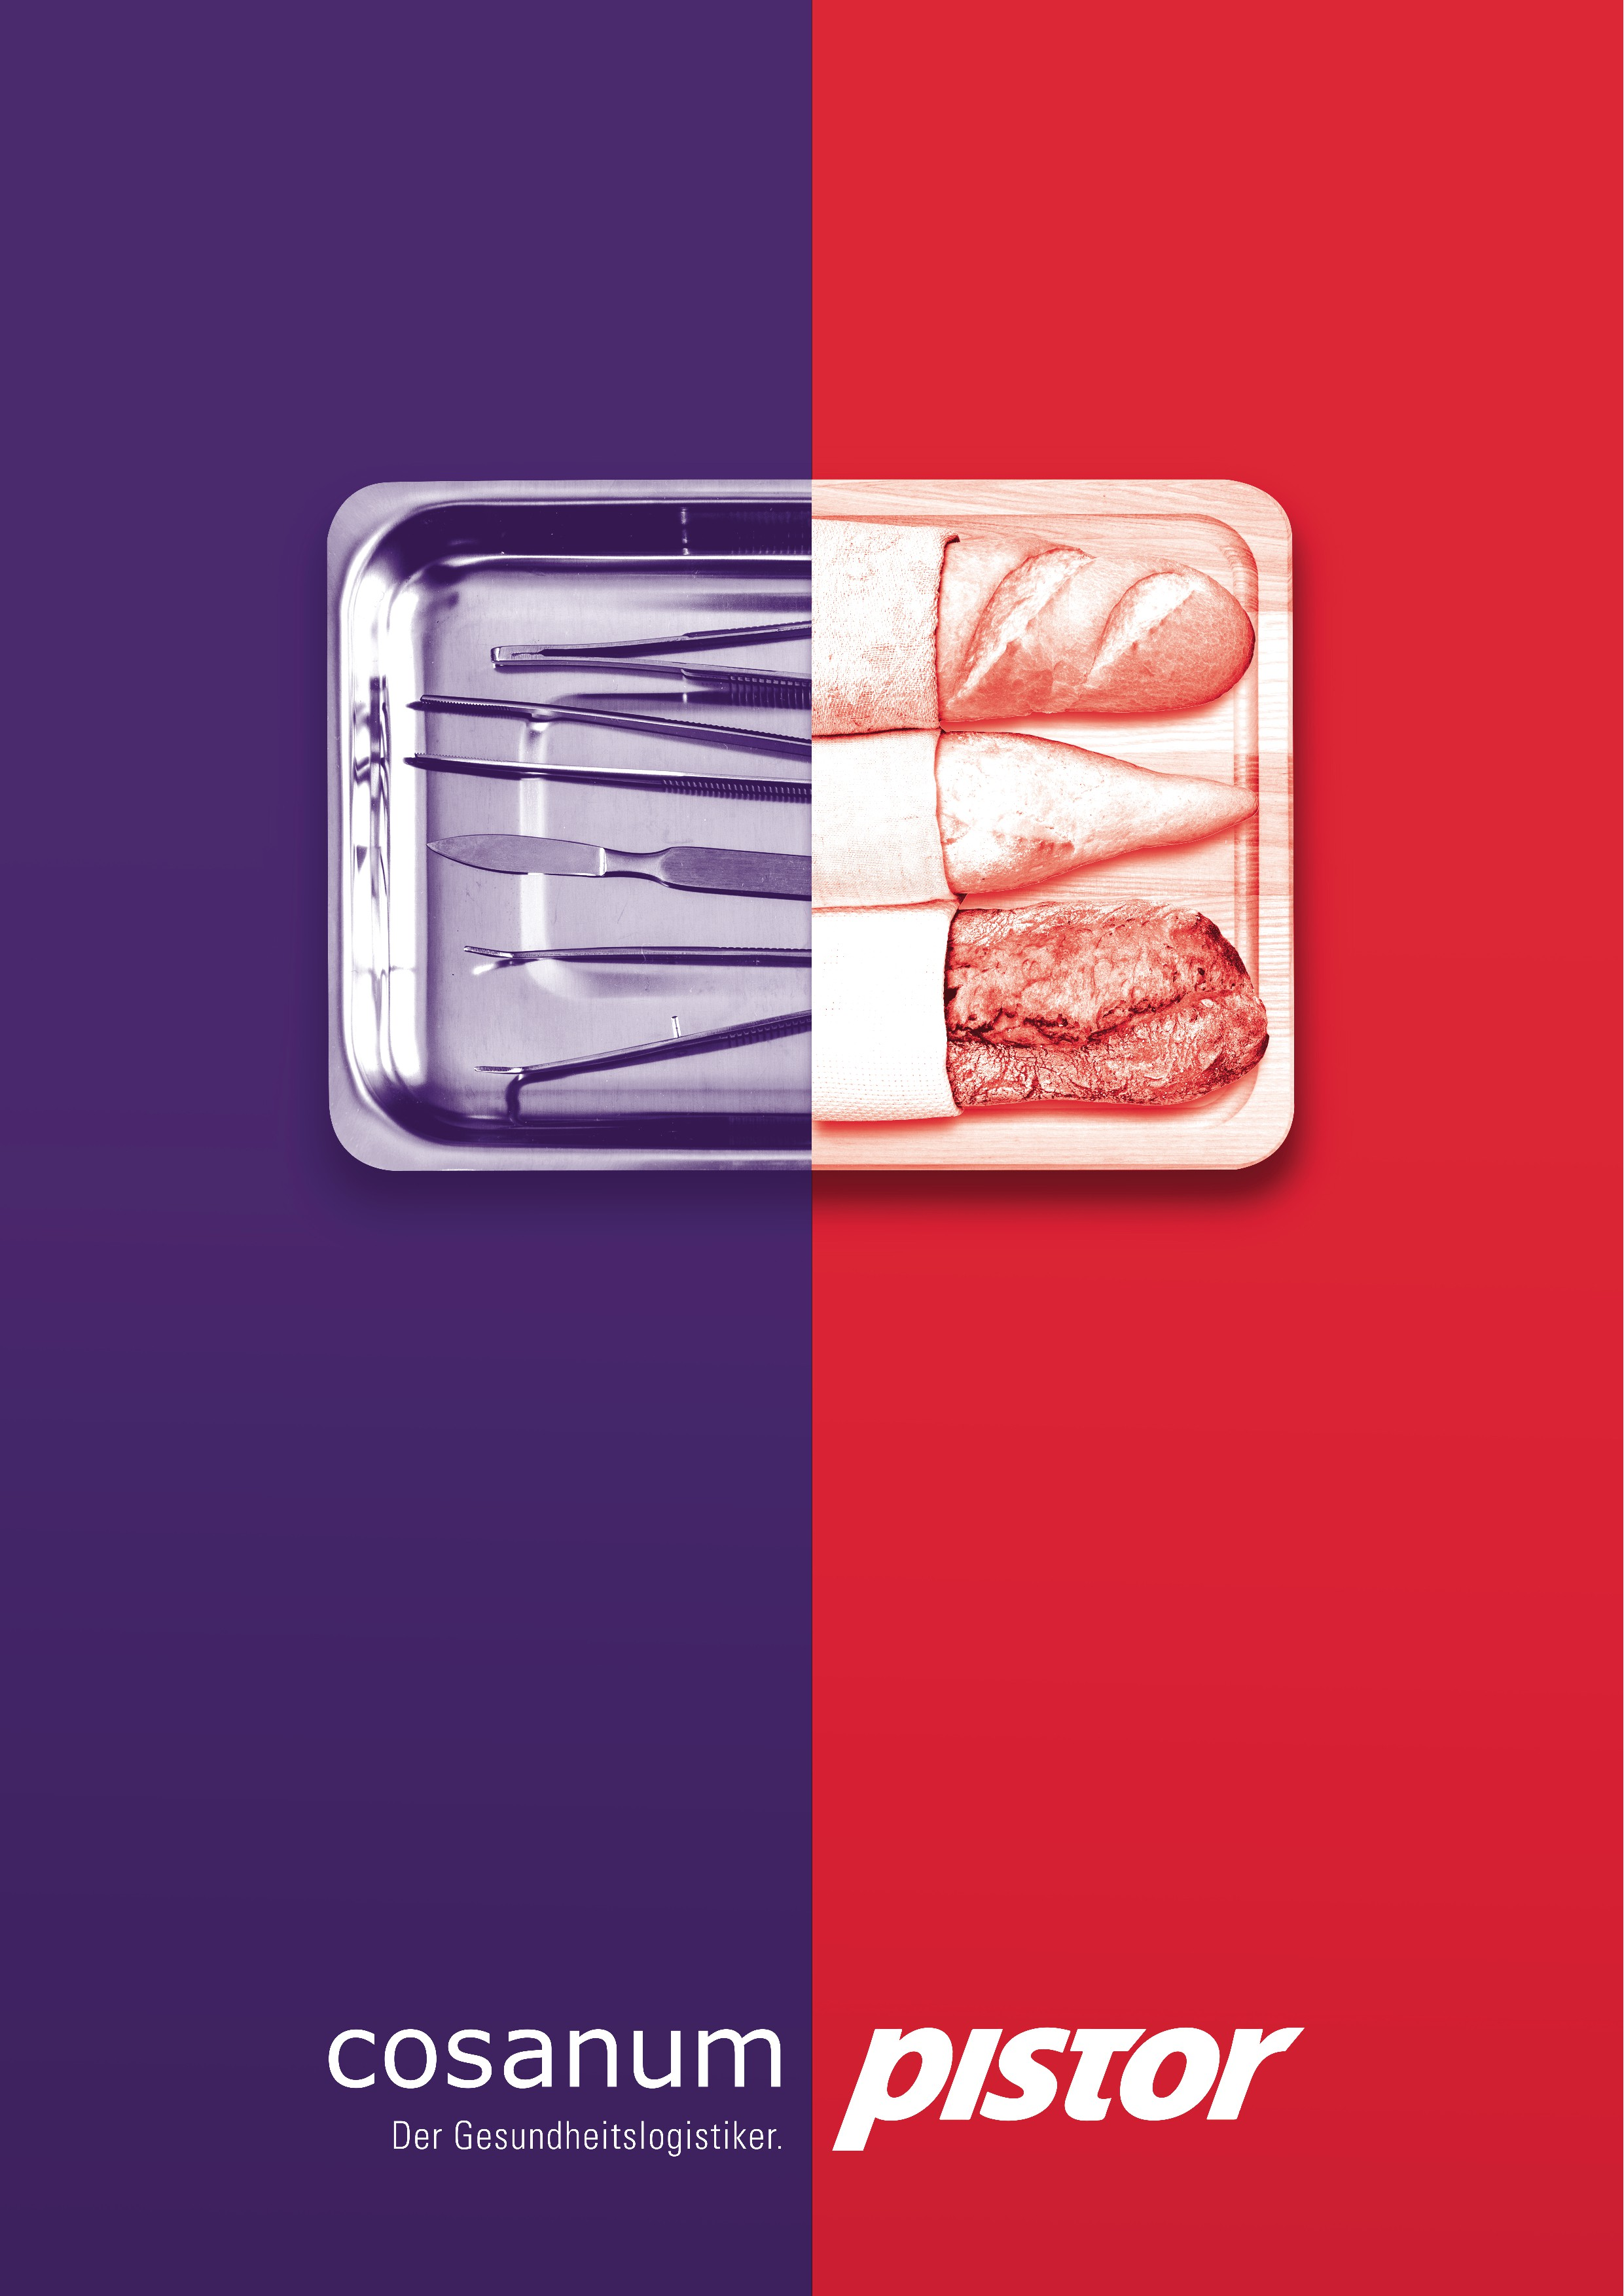 Graphic/Signet: Visual Fusion of the products Cosanum and Pistor